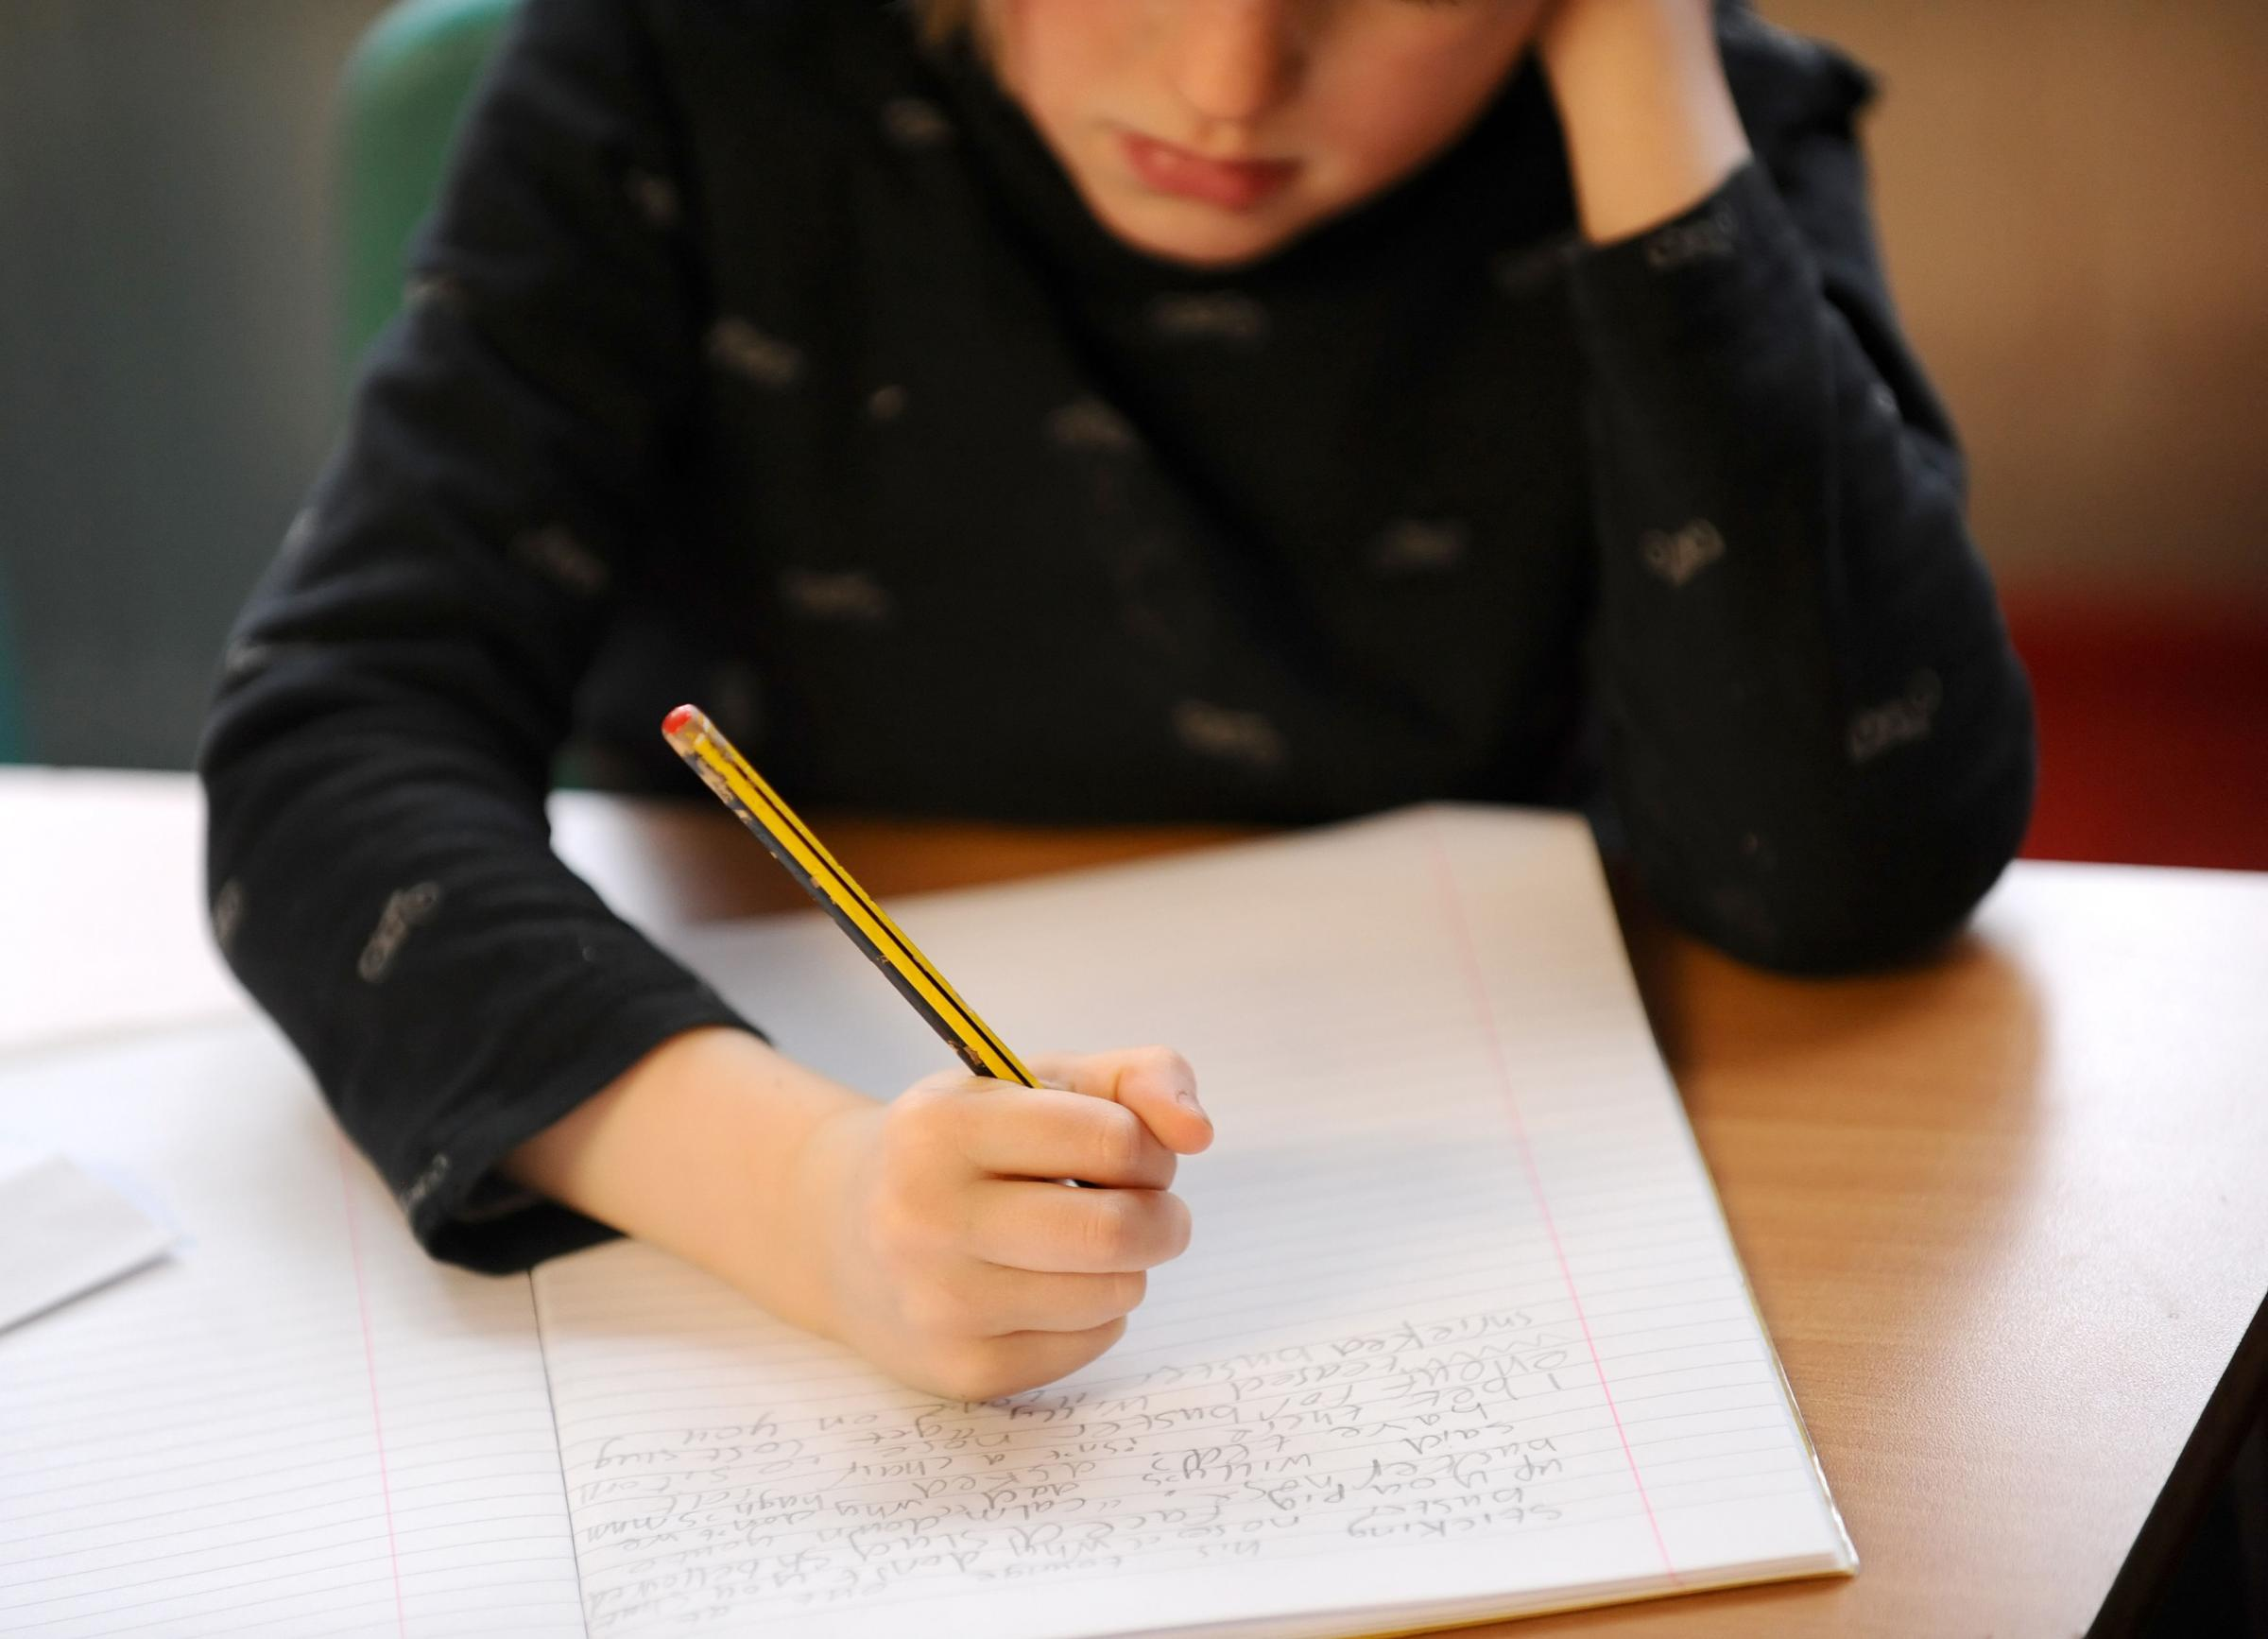 A study suggests that children who grow up in areas that have the greatest literacy challenges are also likely to live much shorter lives than their peers. Picture: Dominic Lipinski/PA Wire